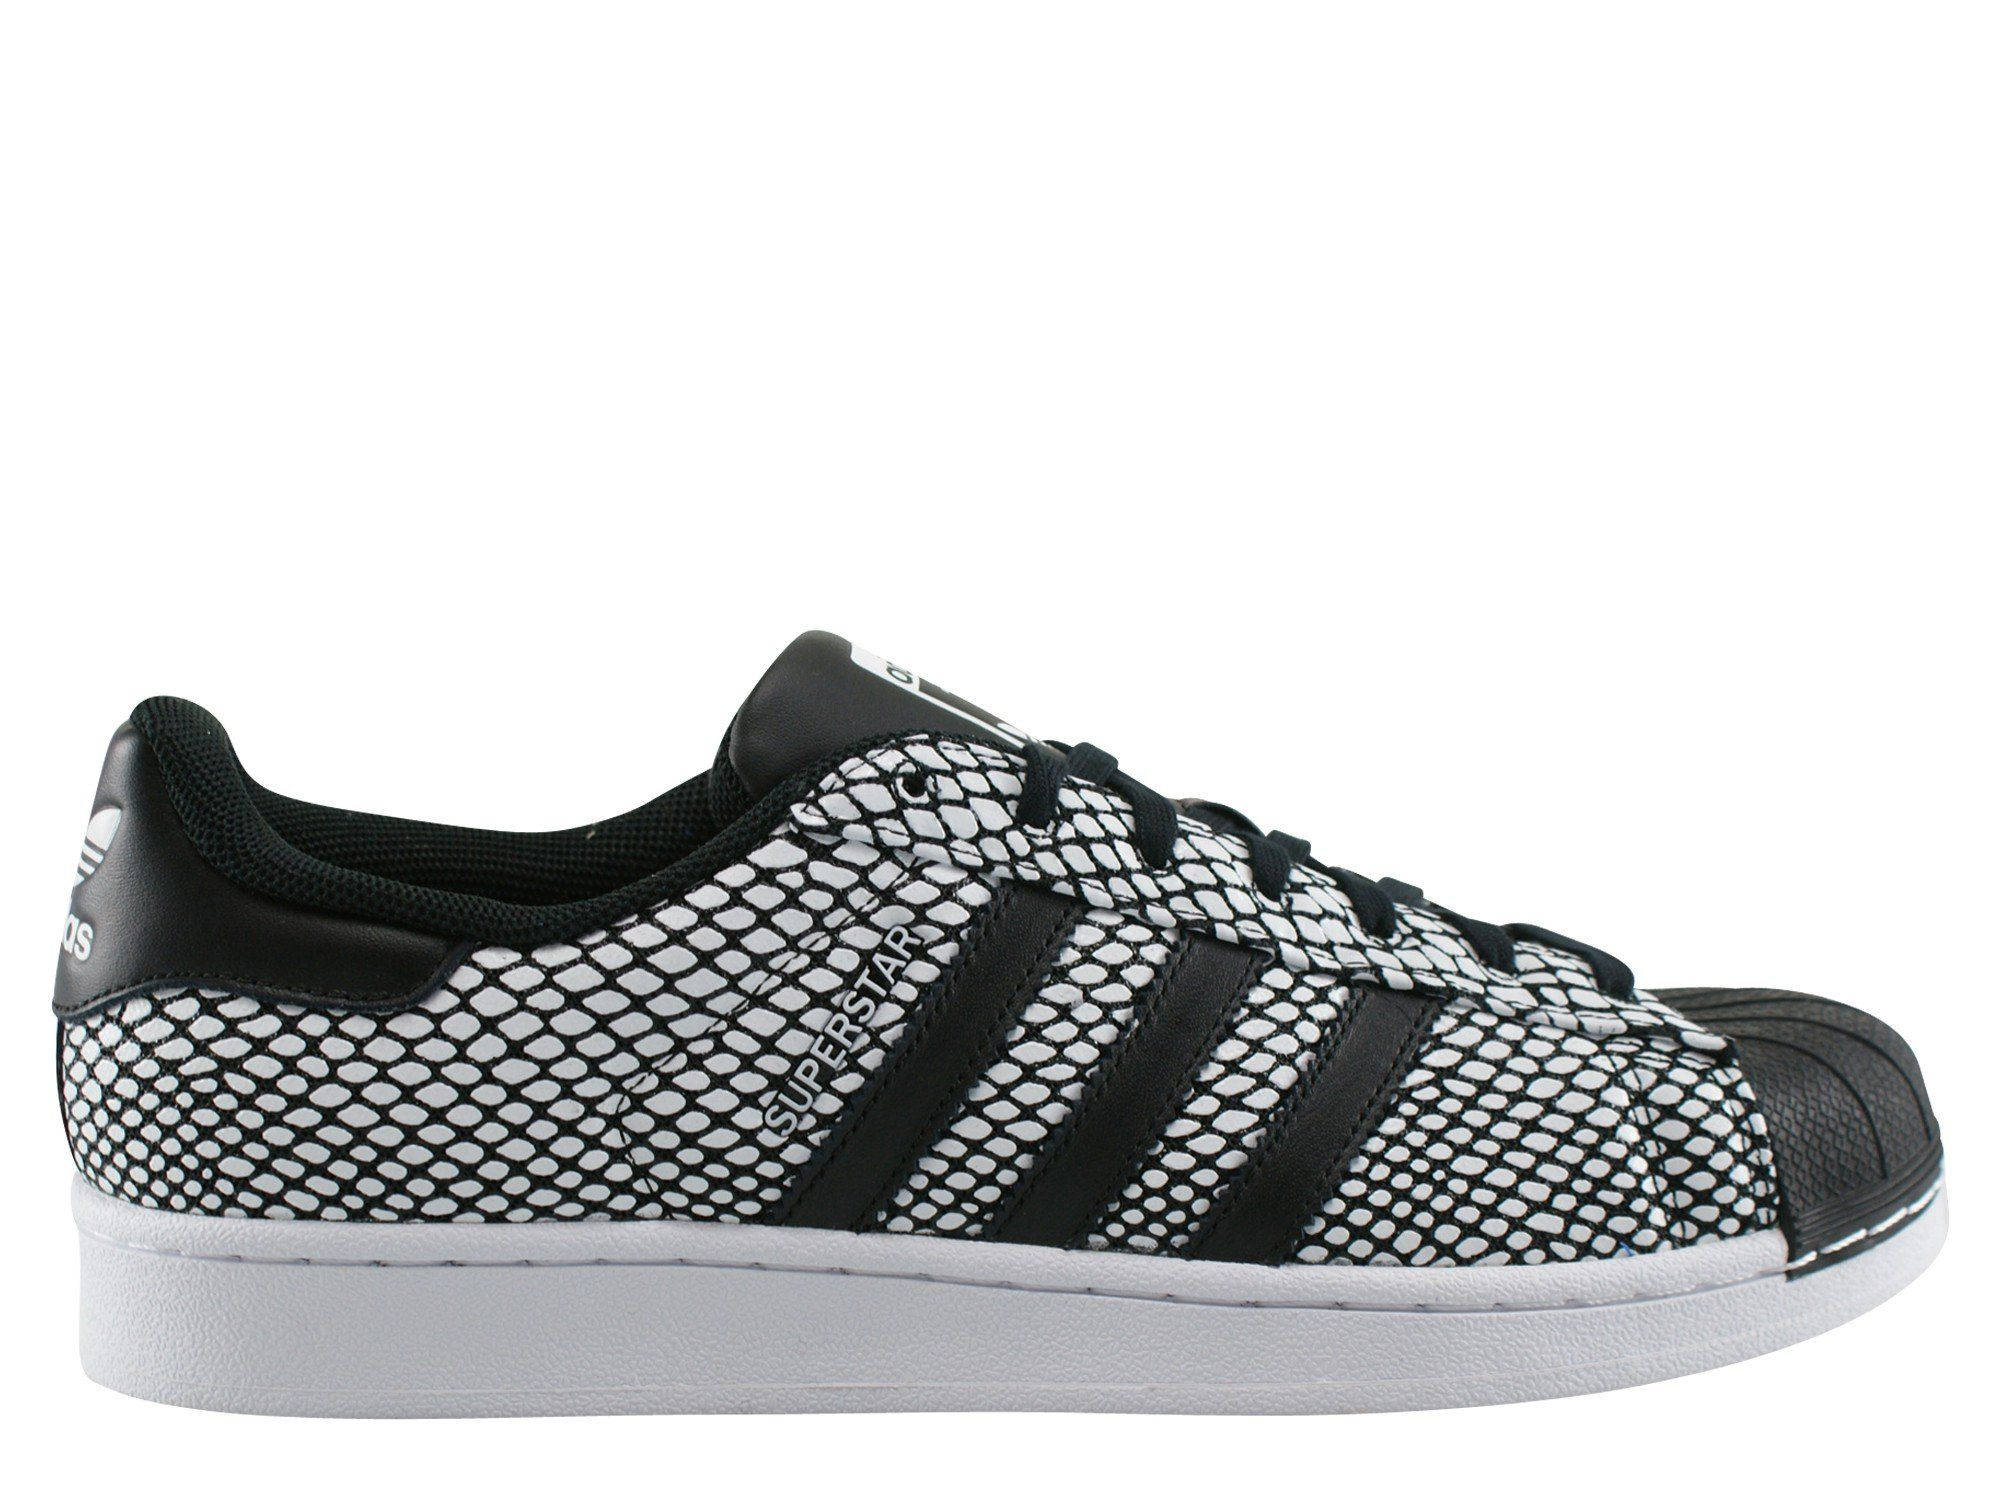 Adidas Superstar Slip On Amazon herbusinessuk.co.uk